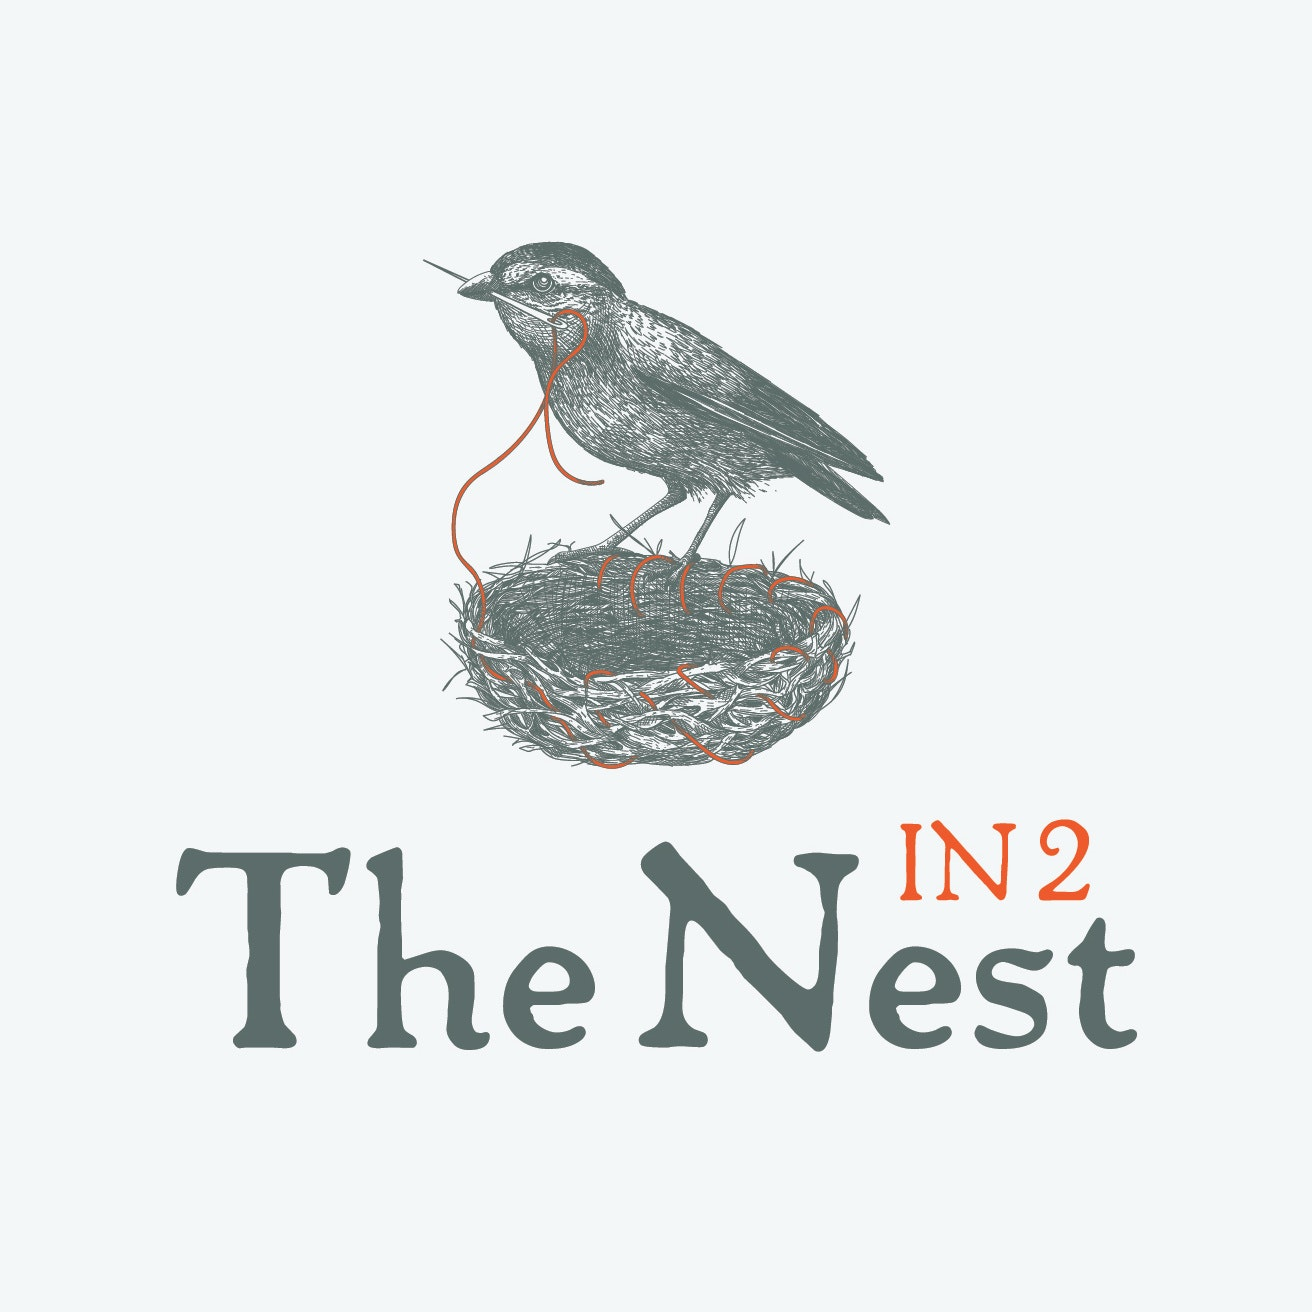 The Nest bird logo